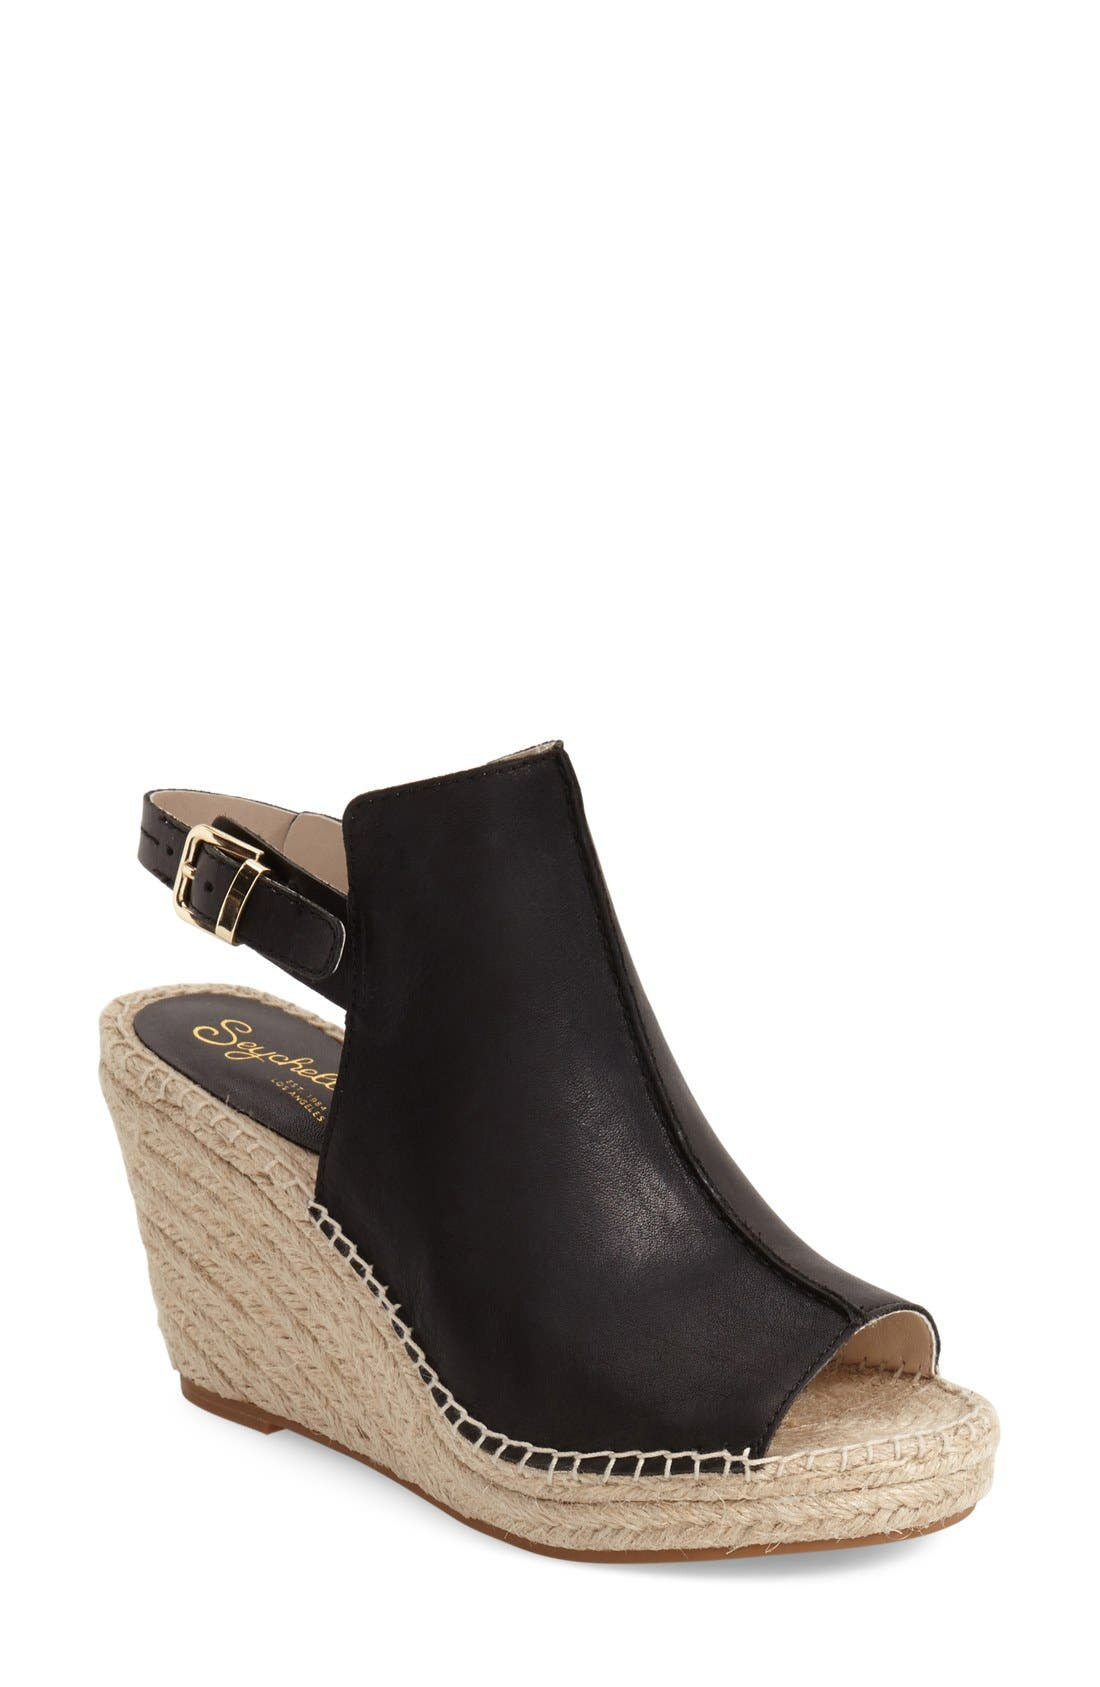 'Charismatic' Espadrille Wedge,                             Main thumbnail 1, color,                             001